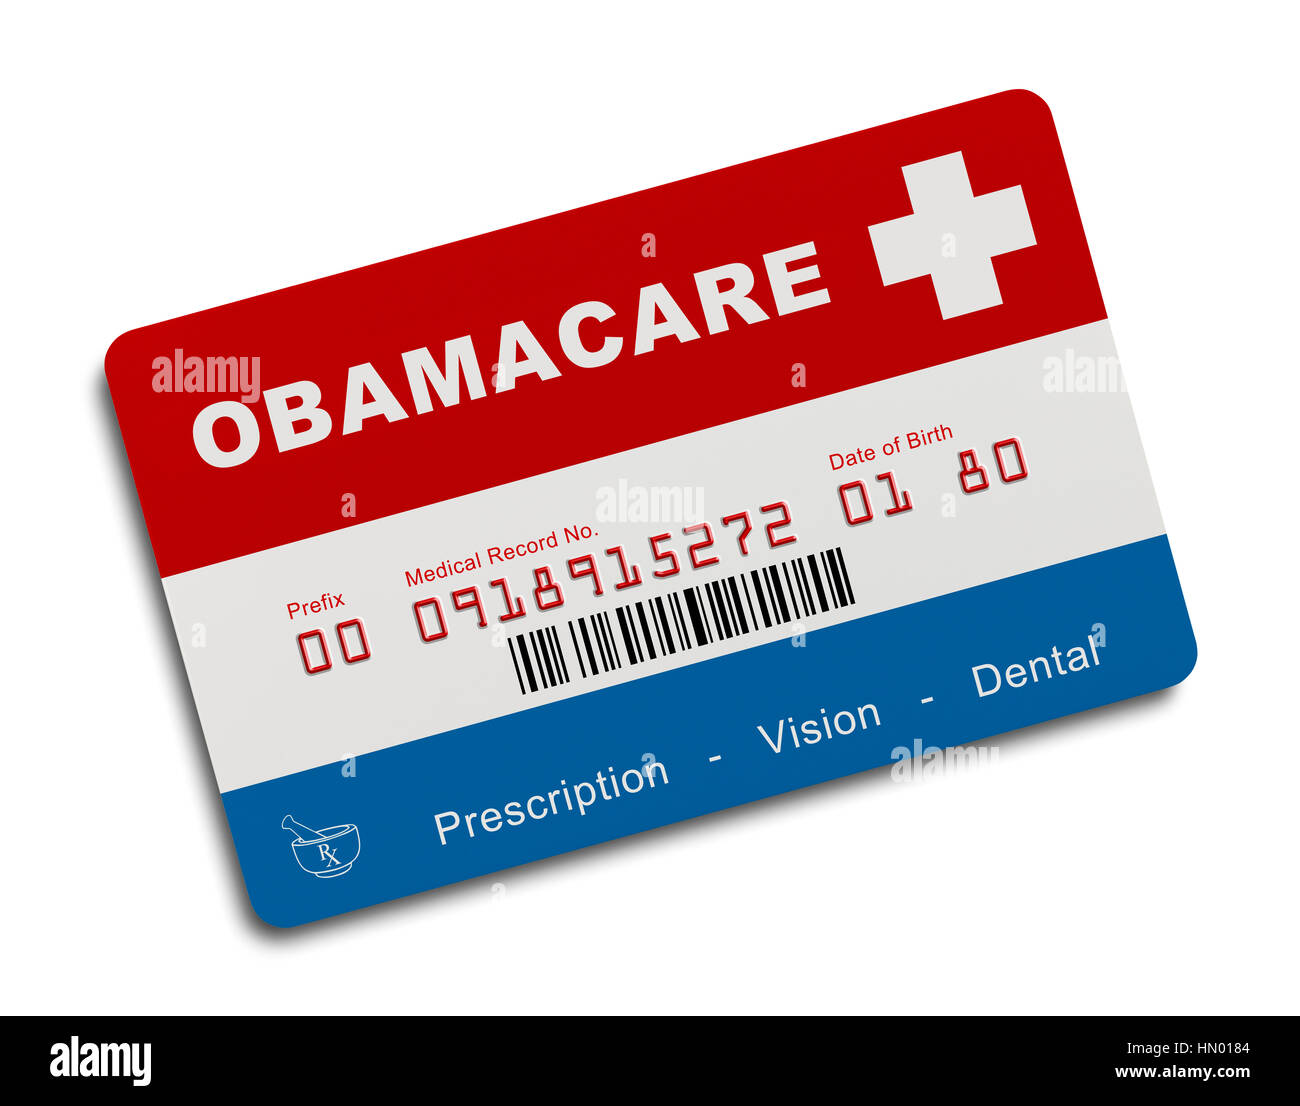 Obamacare Health Insurance Card Isolated on White Background. - Stock Image